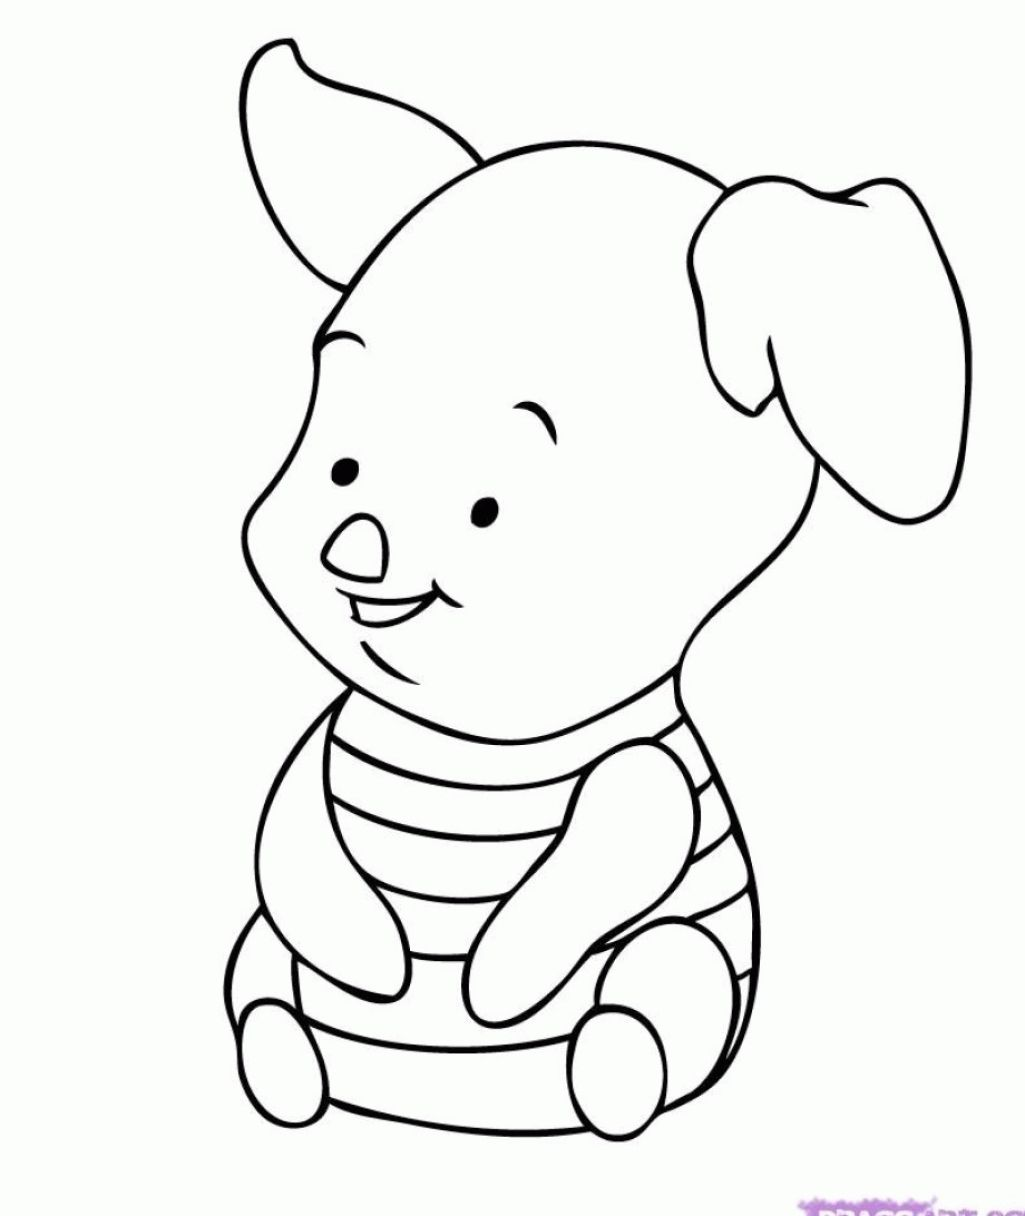 Character Coloring Pages Coloring Pages Remarkable Disney Characters Coloringages For Davemelillo Com Monster Coloring Pages Cute Coloring Pages Disney Coloring Pages [ 1216 x 1025 Pixel ]